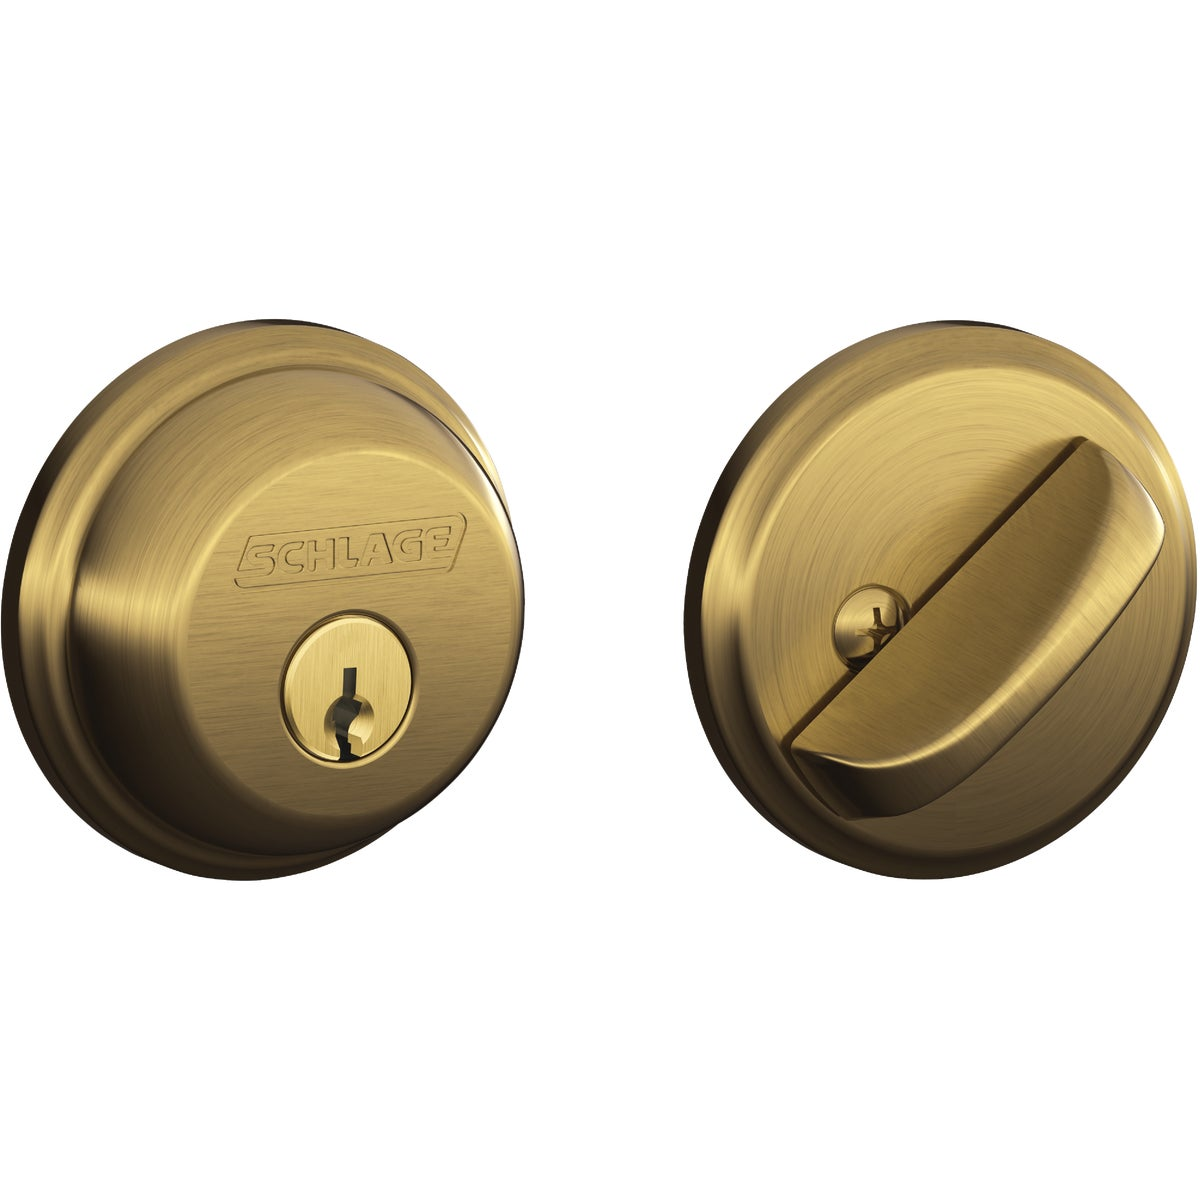 AB 1CYL DEADBOLT - B60NV609 by Schlage Lock Co